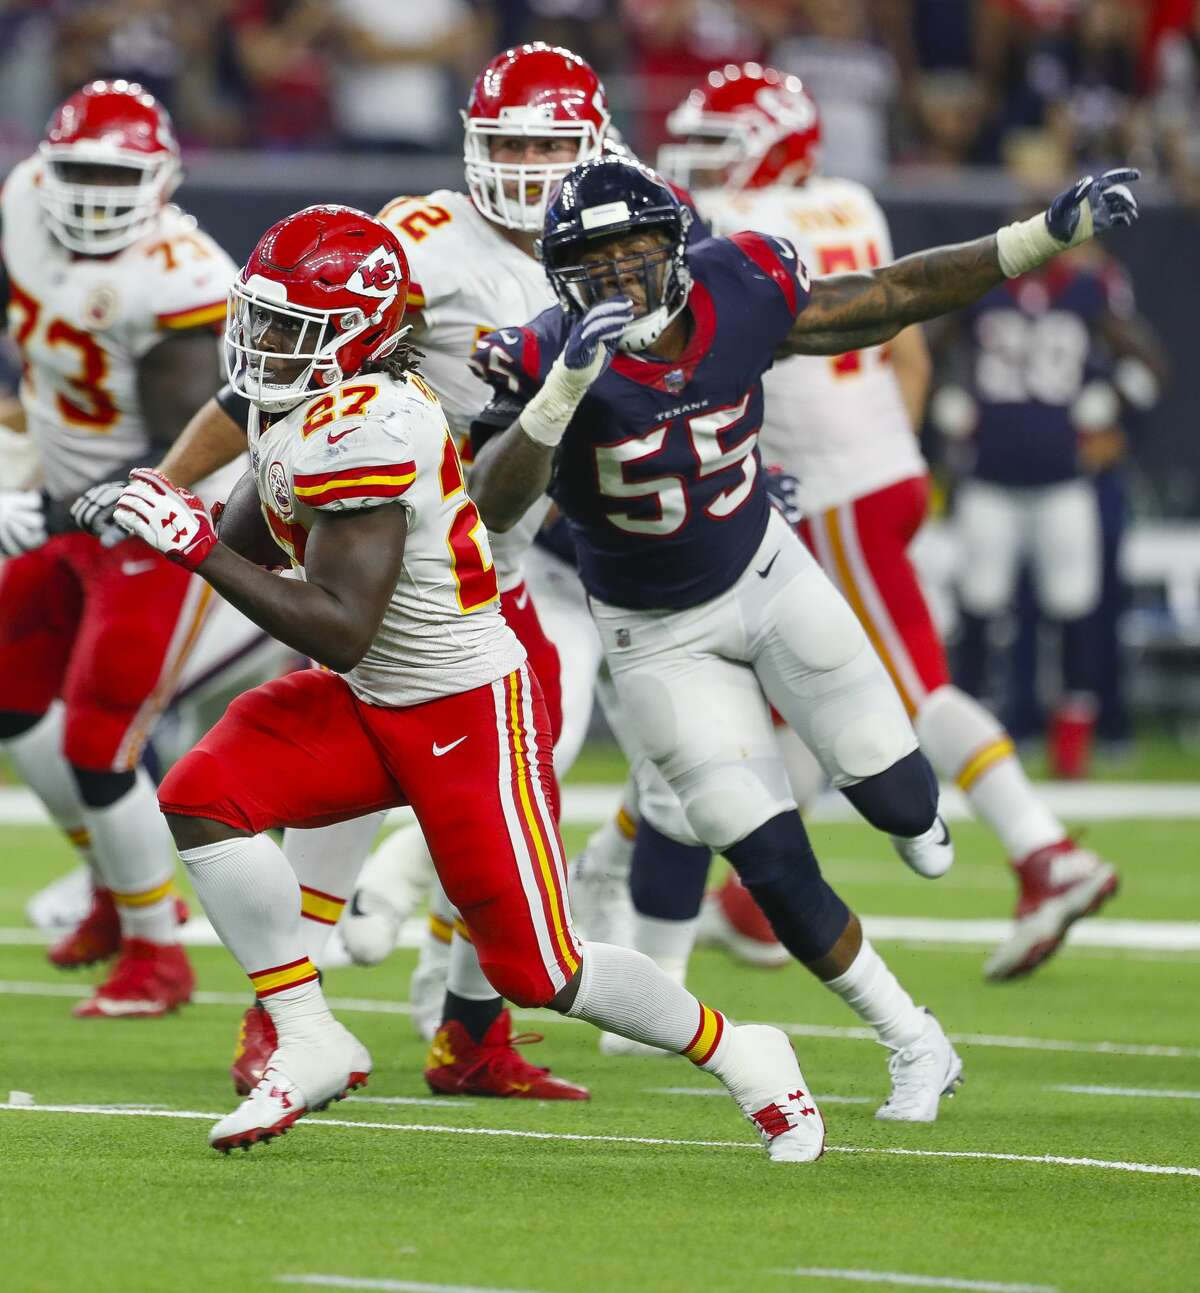 Kansas City Chiefs running back Kareem Hunt (27) sprints downfield past Houston Texans inside linebacker Benardrick McKinney (55) during the fourth quarter of an NFL football game at NRG Stadium on Sunday, Oct. 8, 2017, in Houston. ( Brett Coomer / Houston Chronicle )